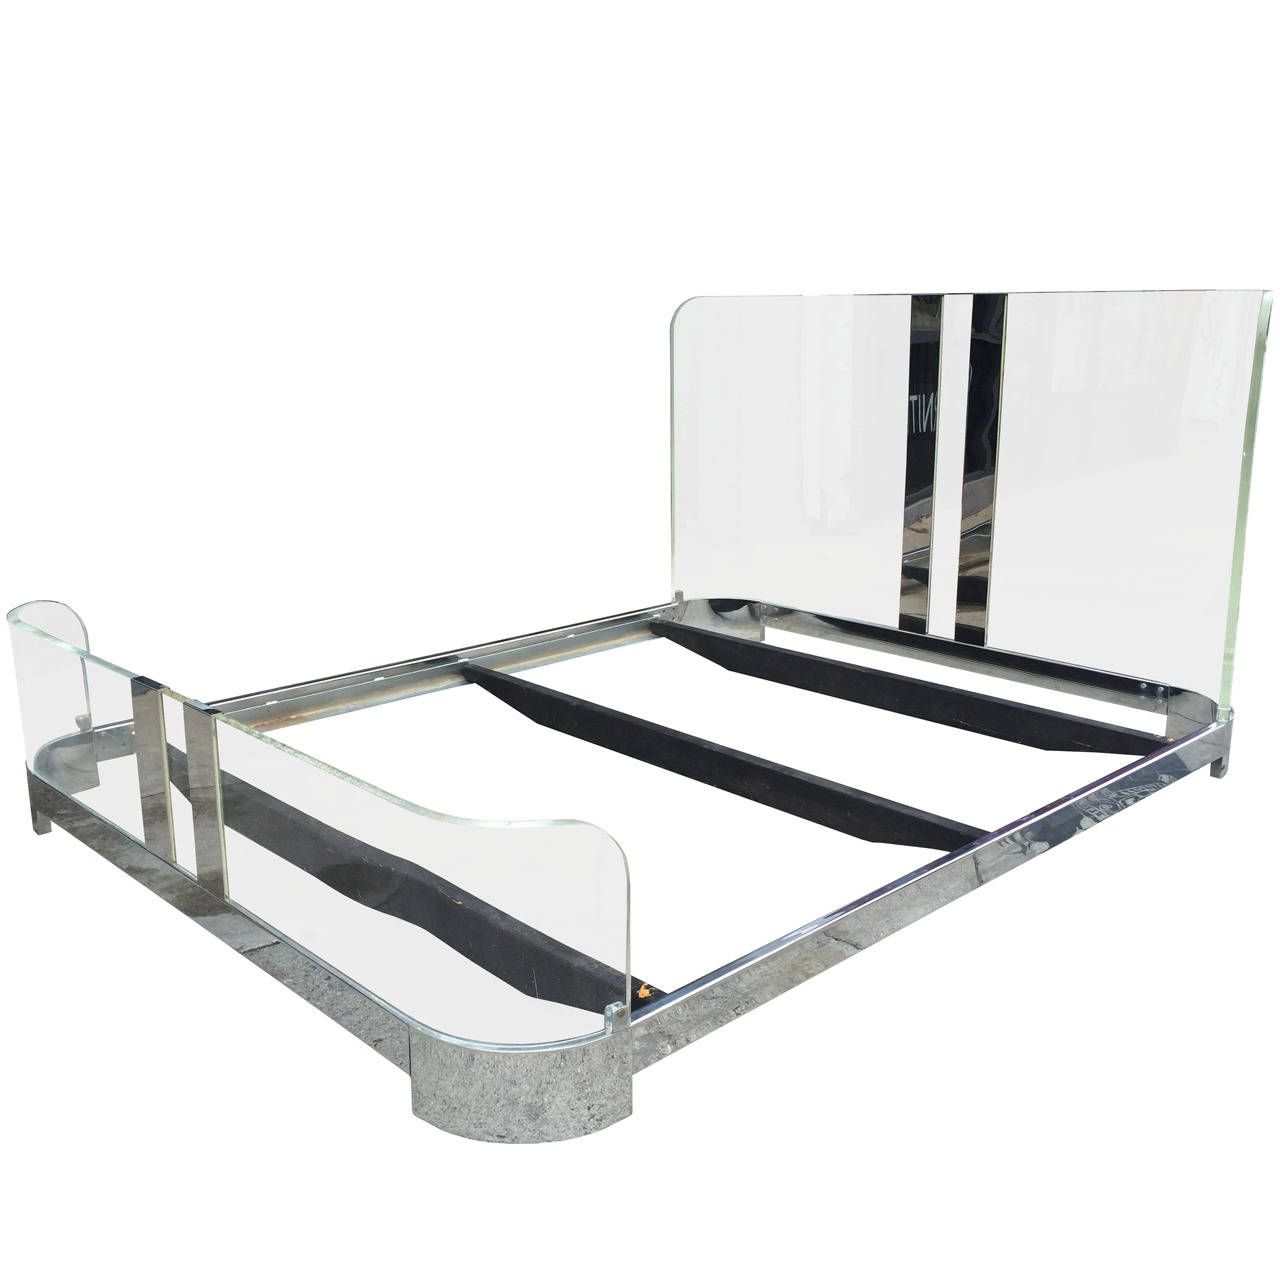 daec5b85fc87 Lucite and Chrome Four Post Canopy Bed King-Size Vintage Headboard Mid- Century. Browse page 3 of 3 for Beds. Check out the price value of Beds and  then bid ...